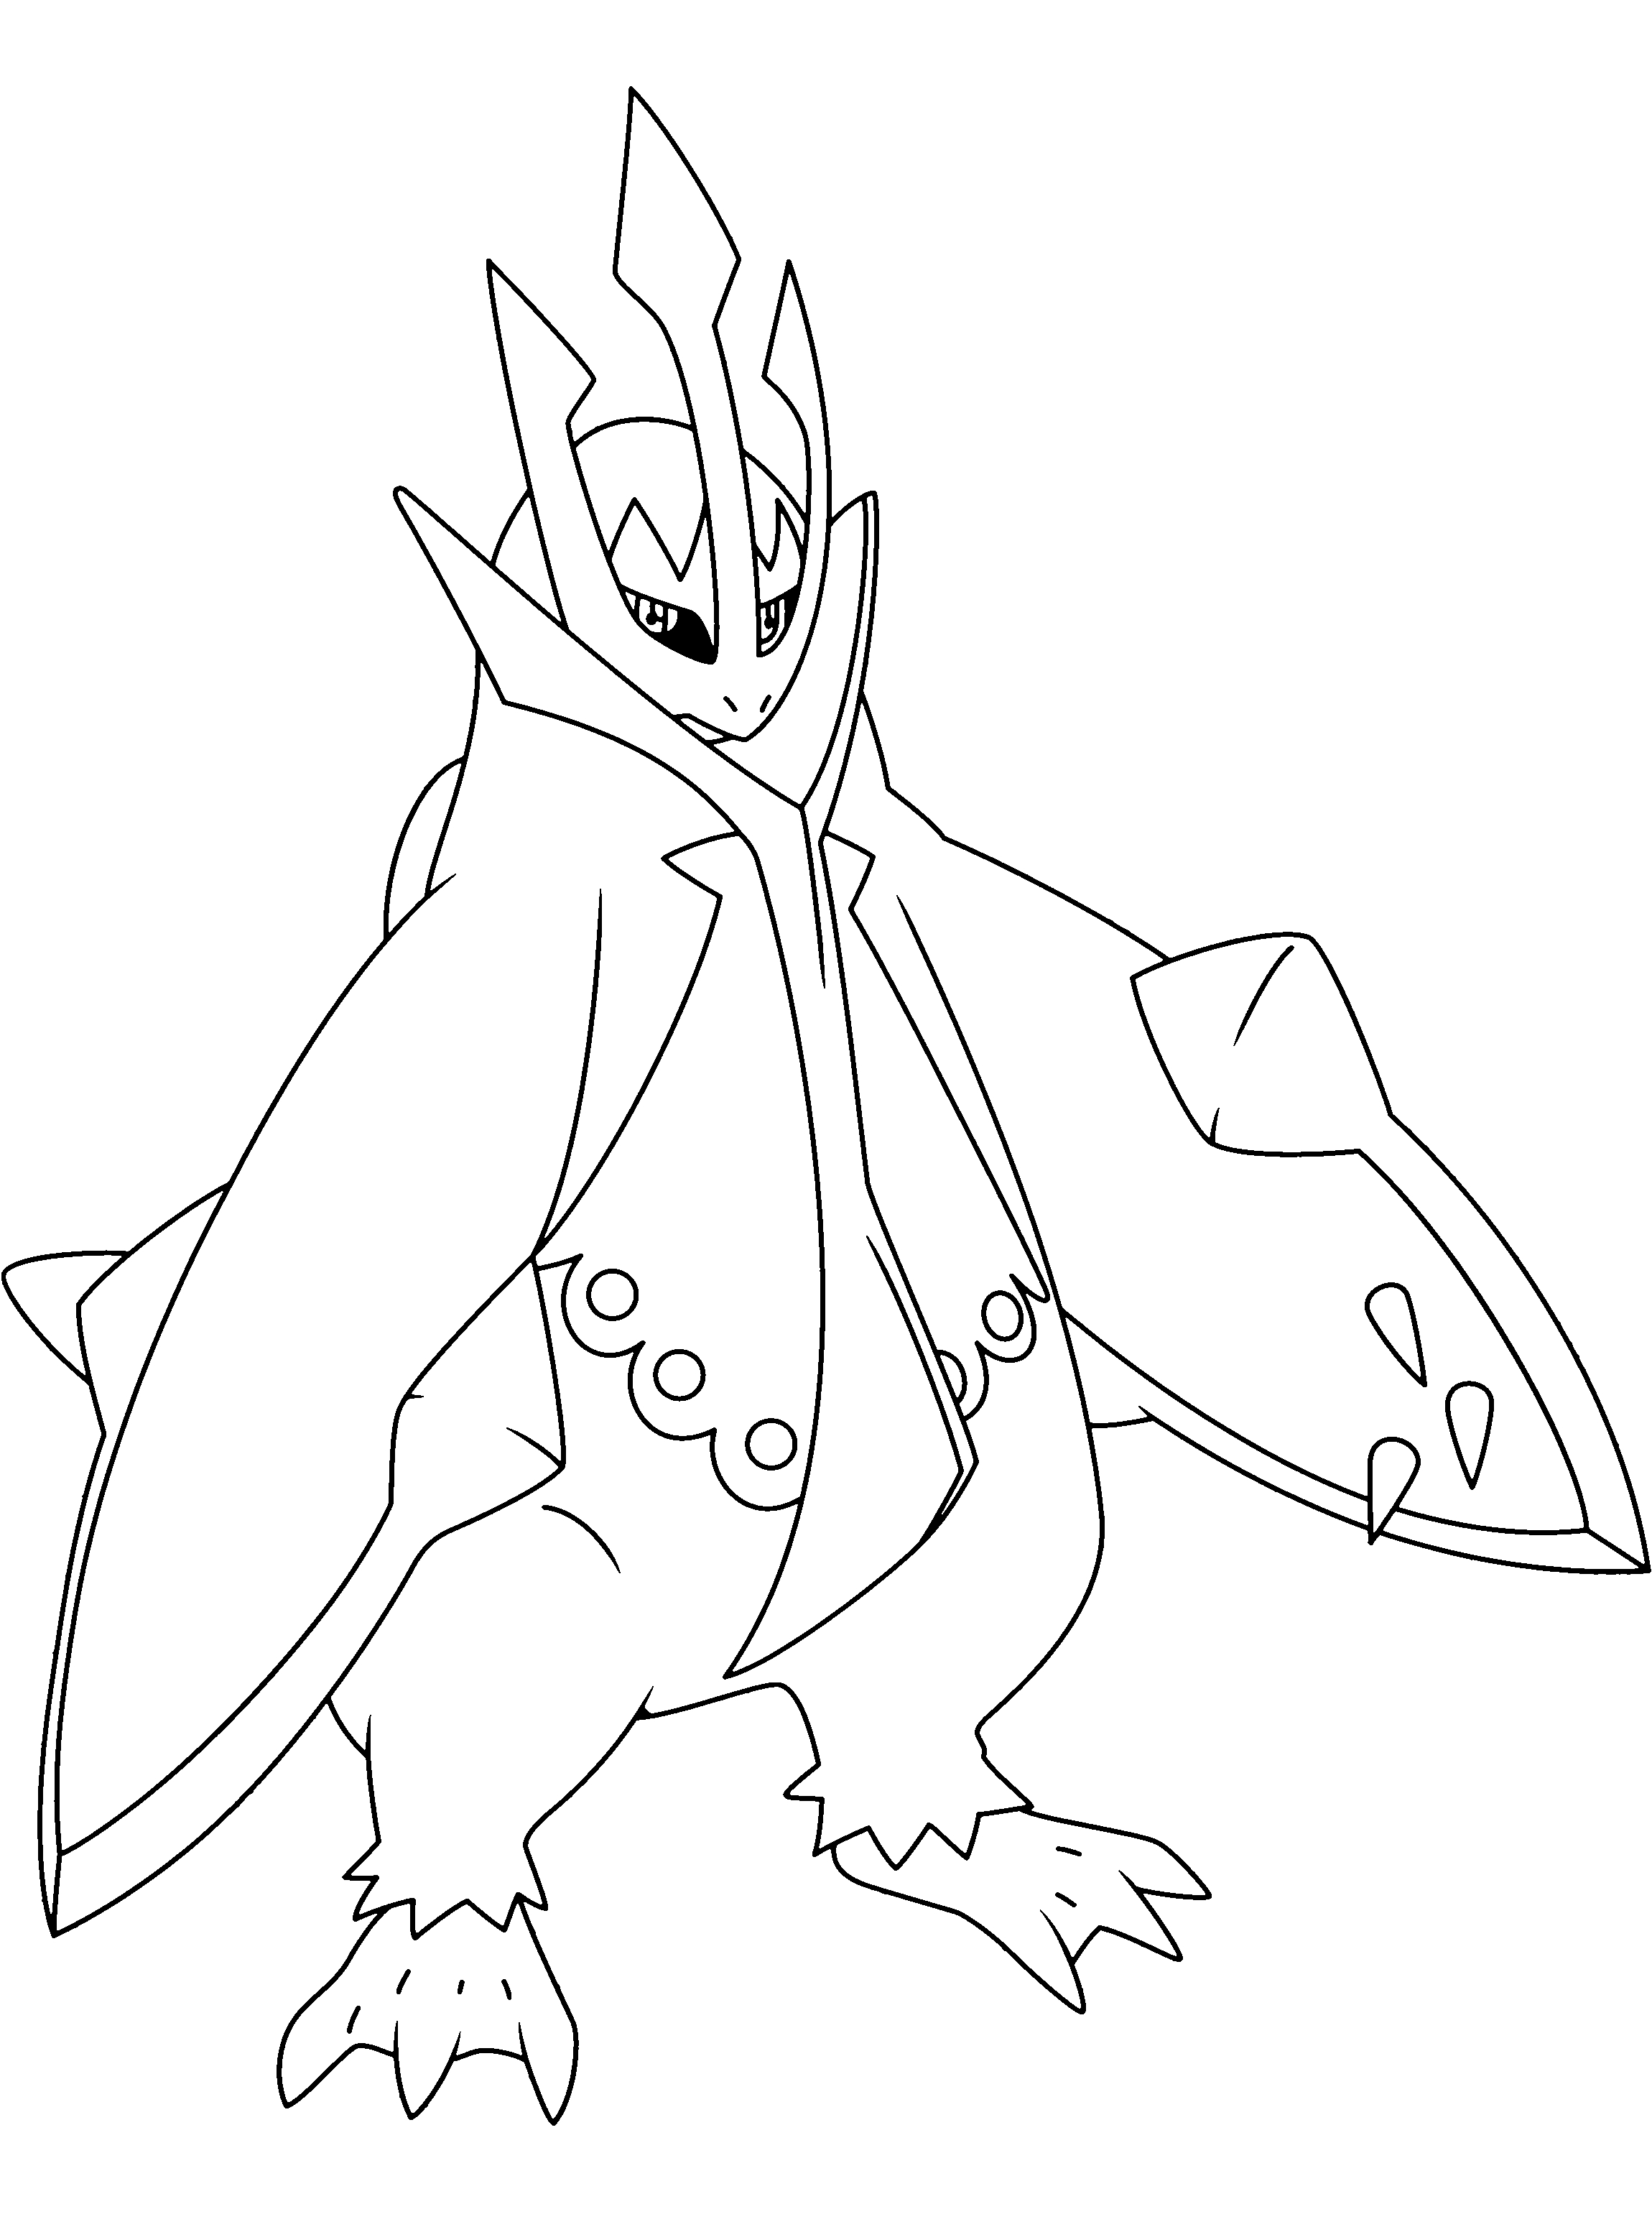 crocodile coloring pages - pingoleon pokemon